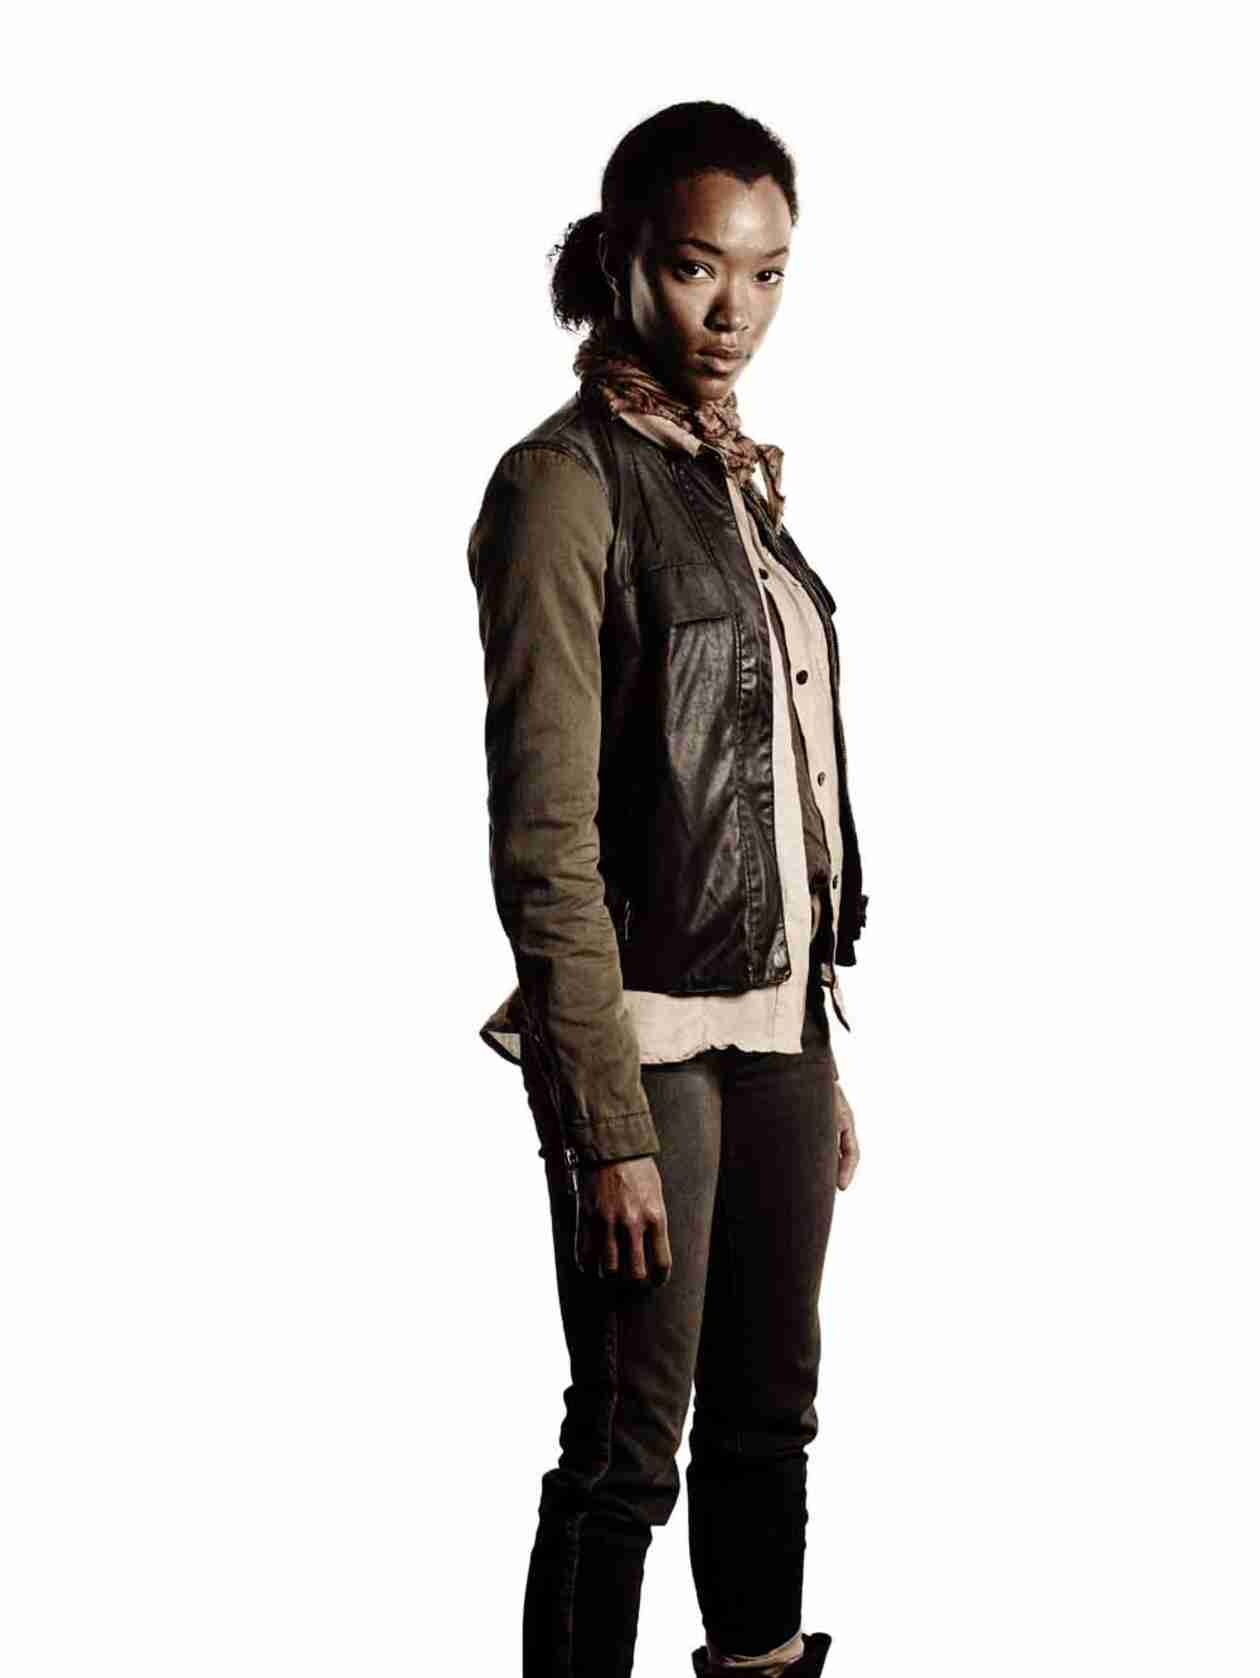 The Walking Dead Season 4: Does Sasha Have Trust Issues? (VIDEO)